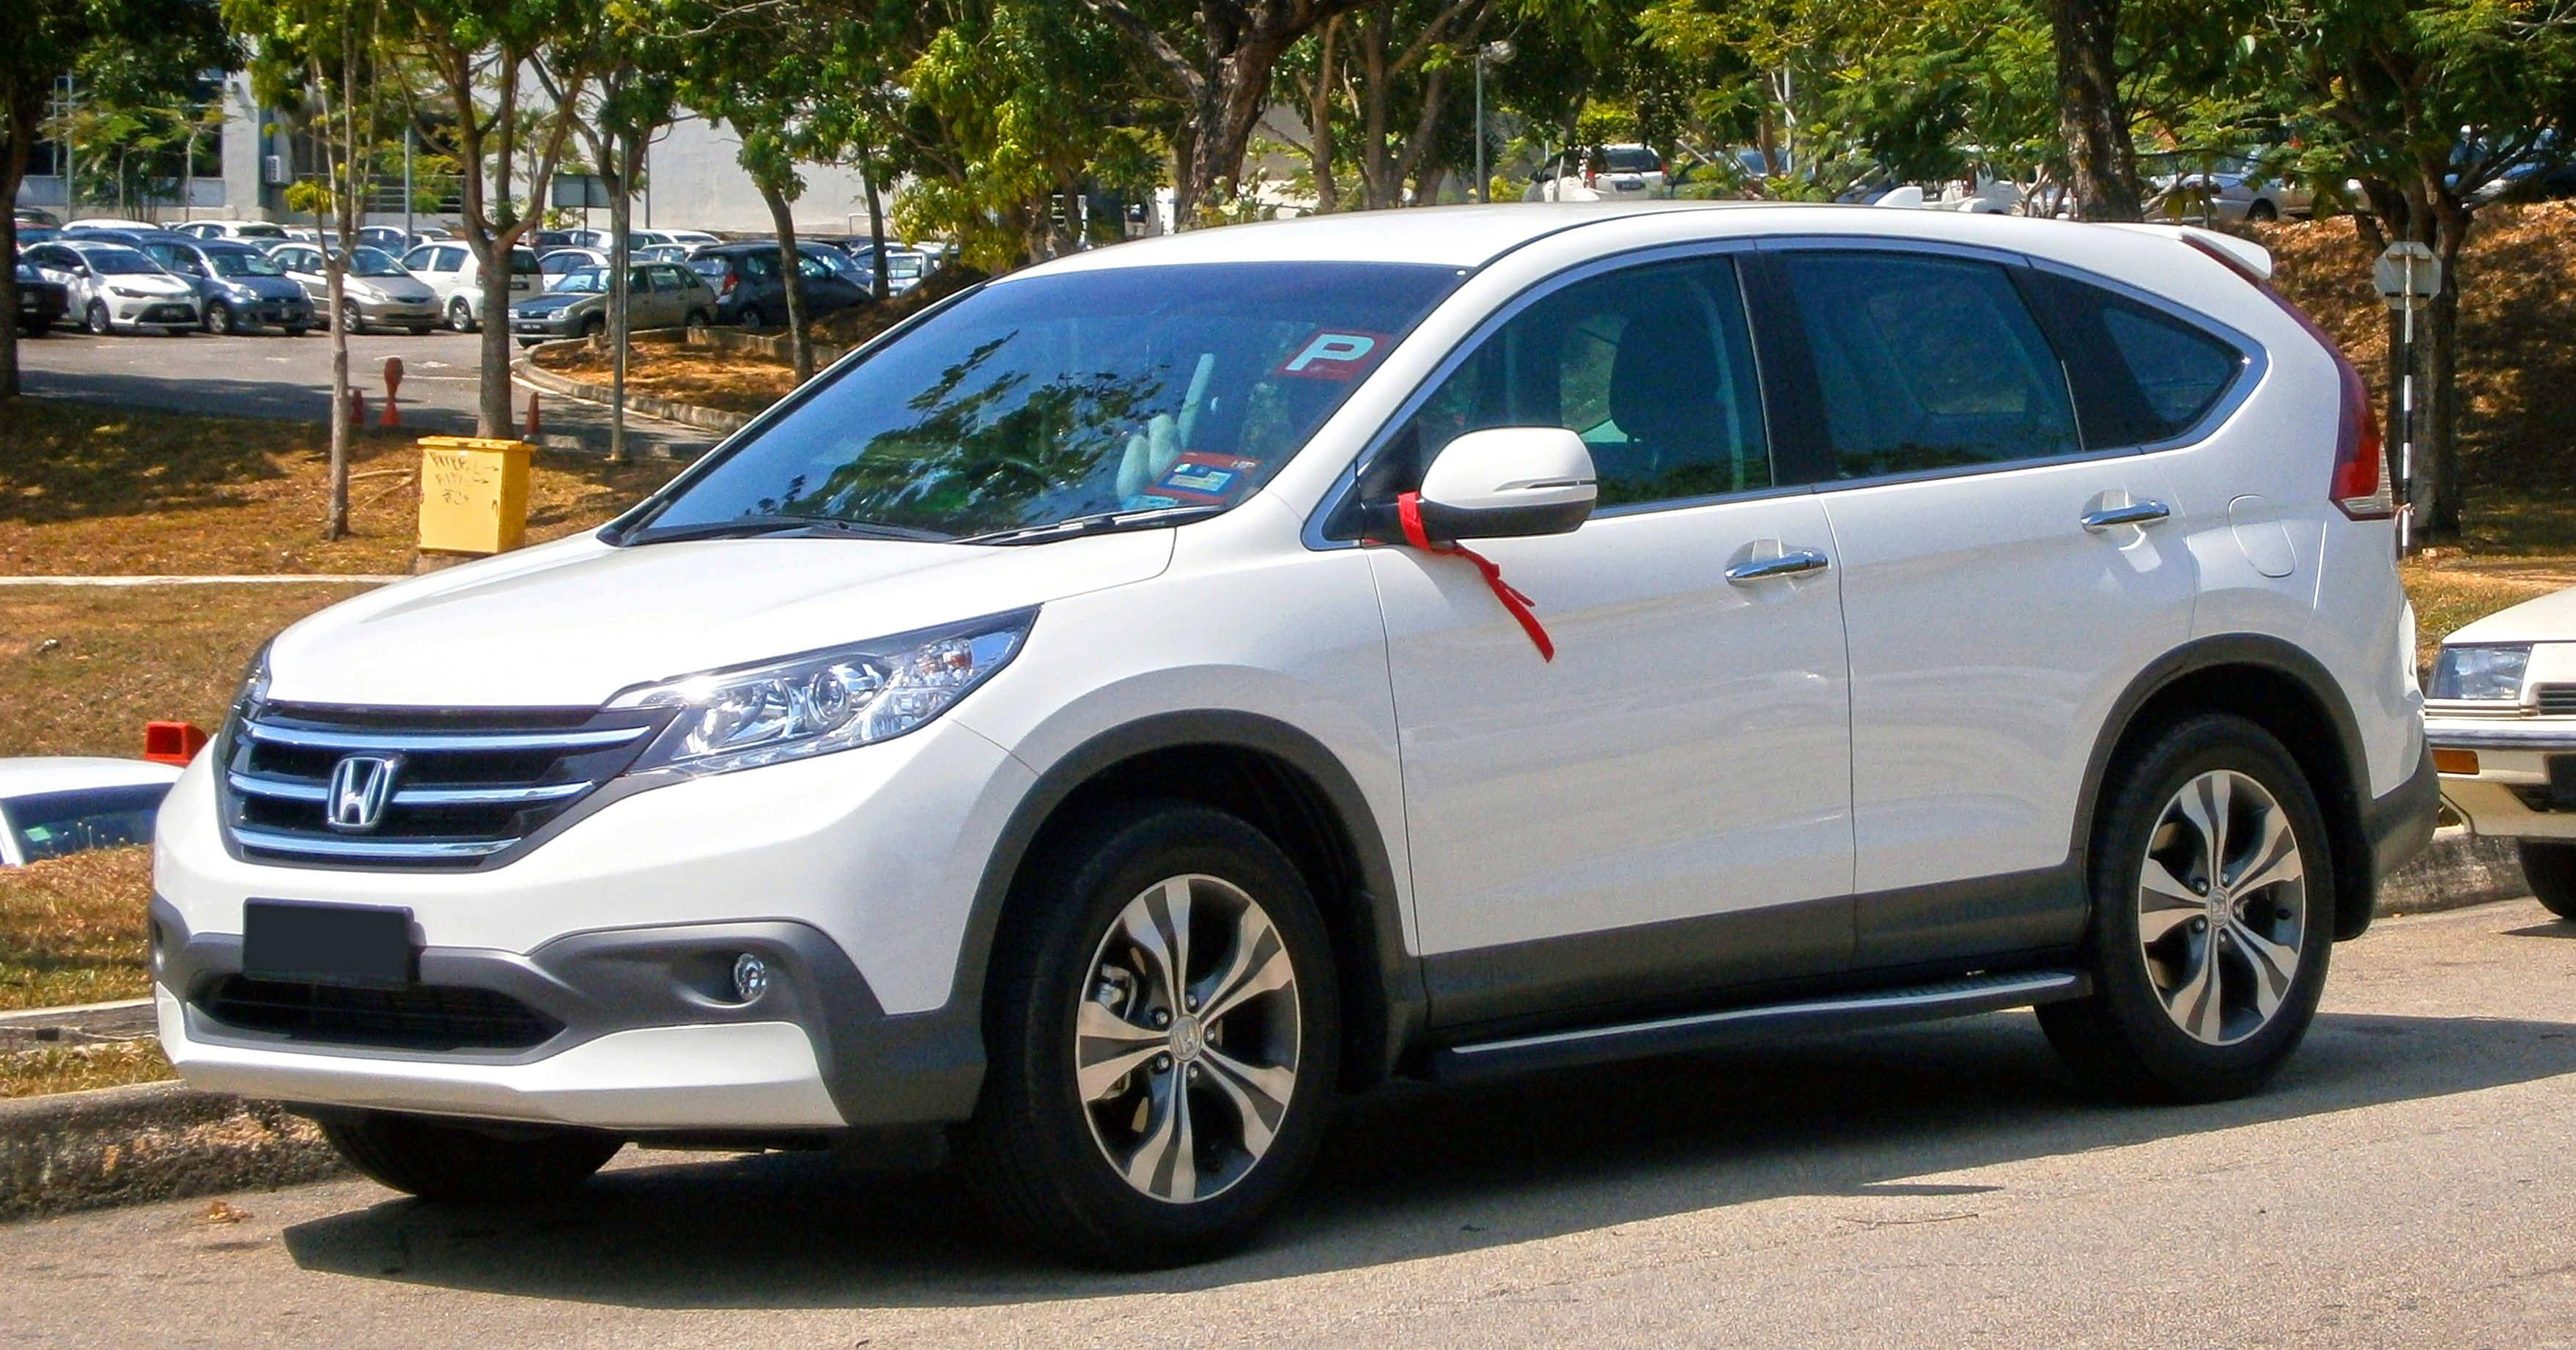 File:2014 Honda CR-V 2.4L i-VTEC (with opt. Modulo Alpha